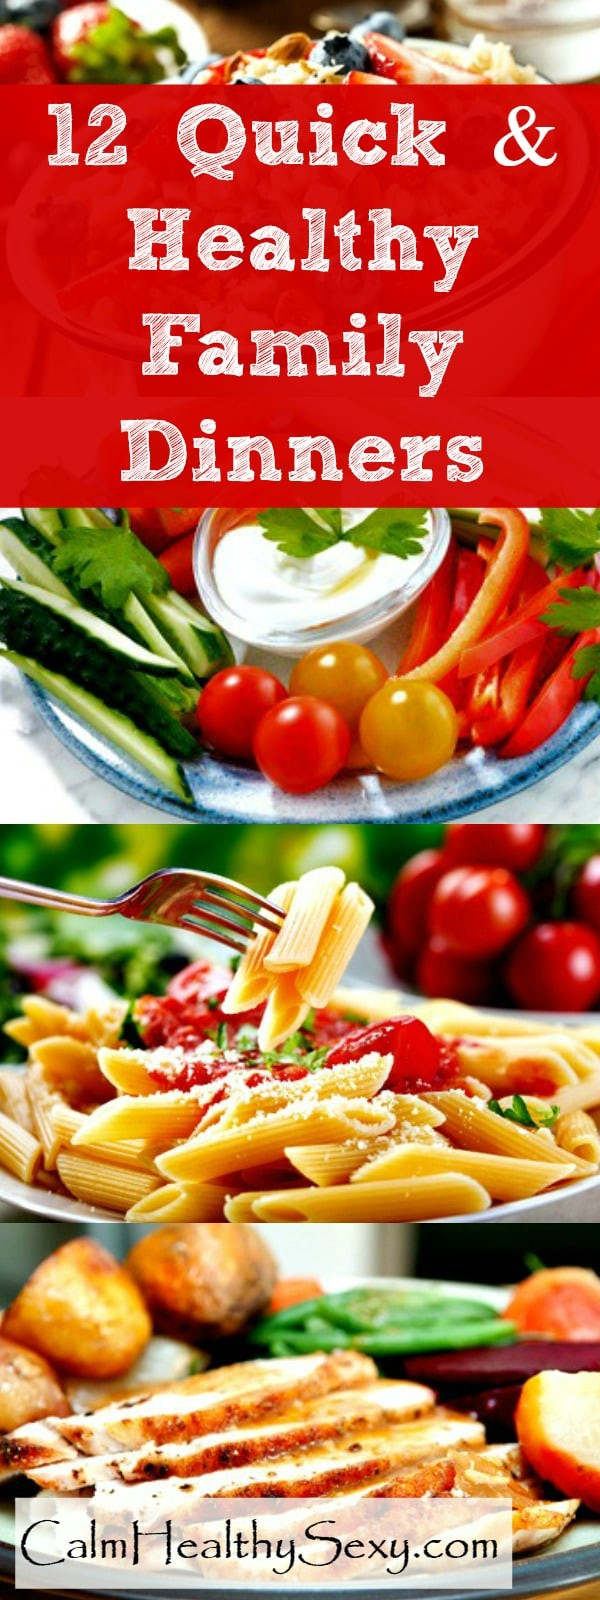 Fast Easy Healthy Dinners  12 Quick and Healthy Family Dinners For Busy Moms with